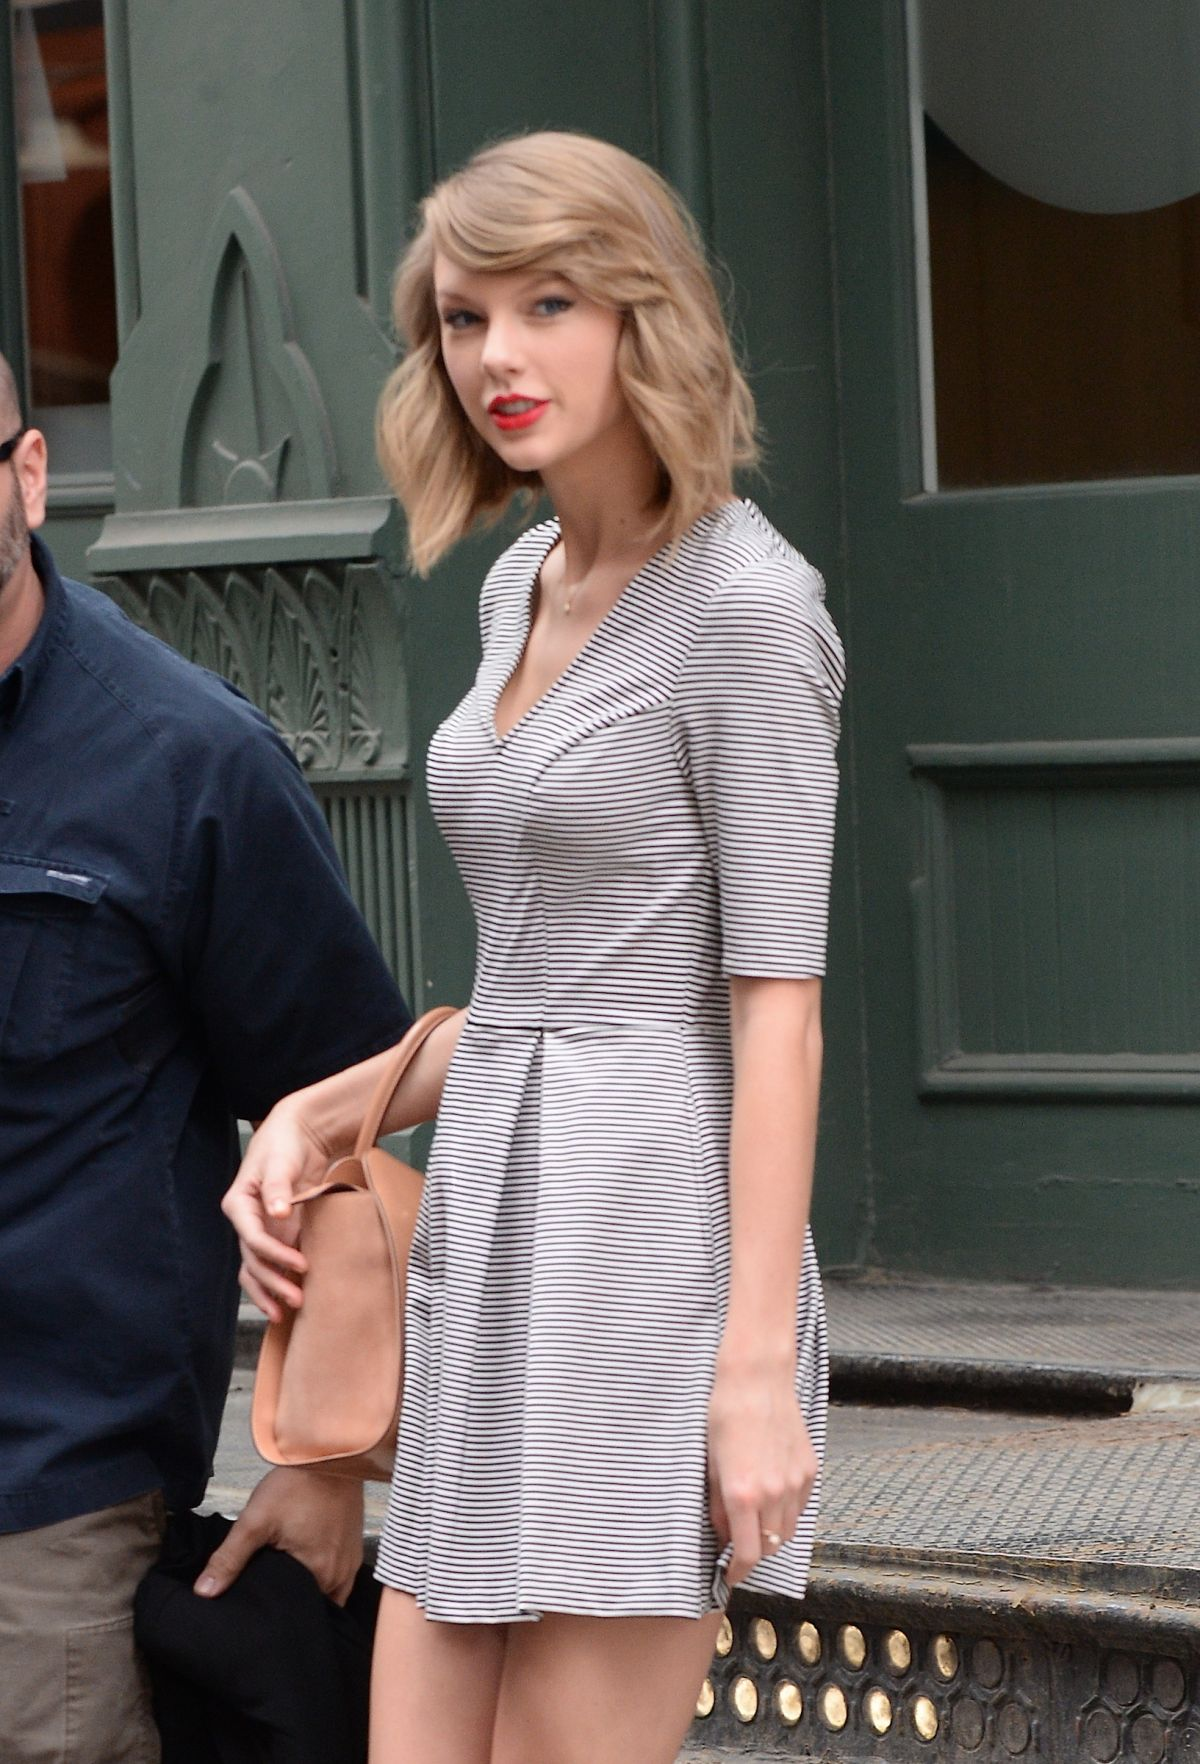 89a369cf86 taylor-swift-out-in-new-york-1104 2